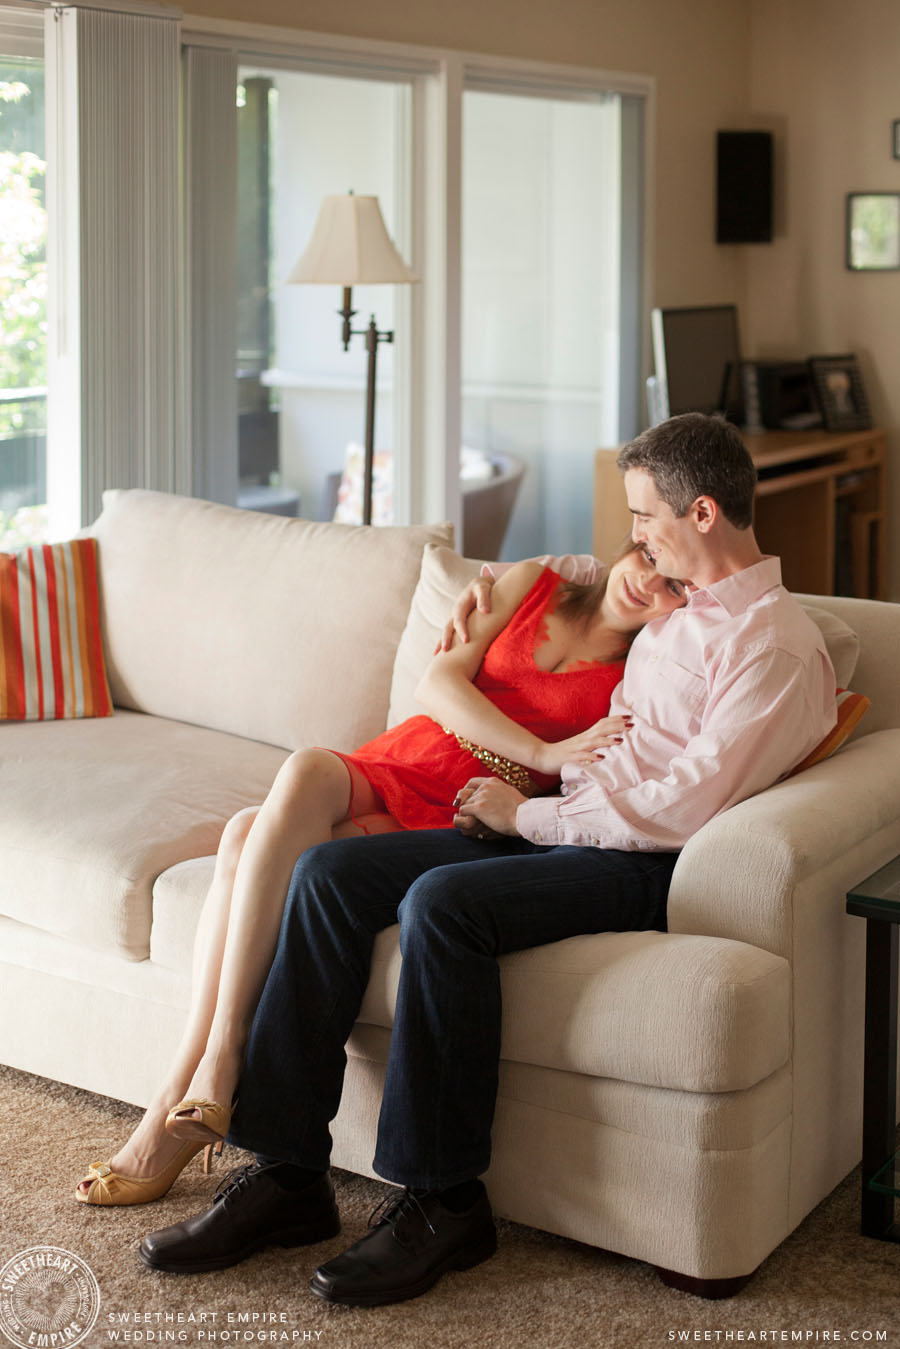 Couples photography at home